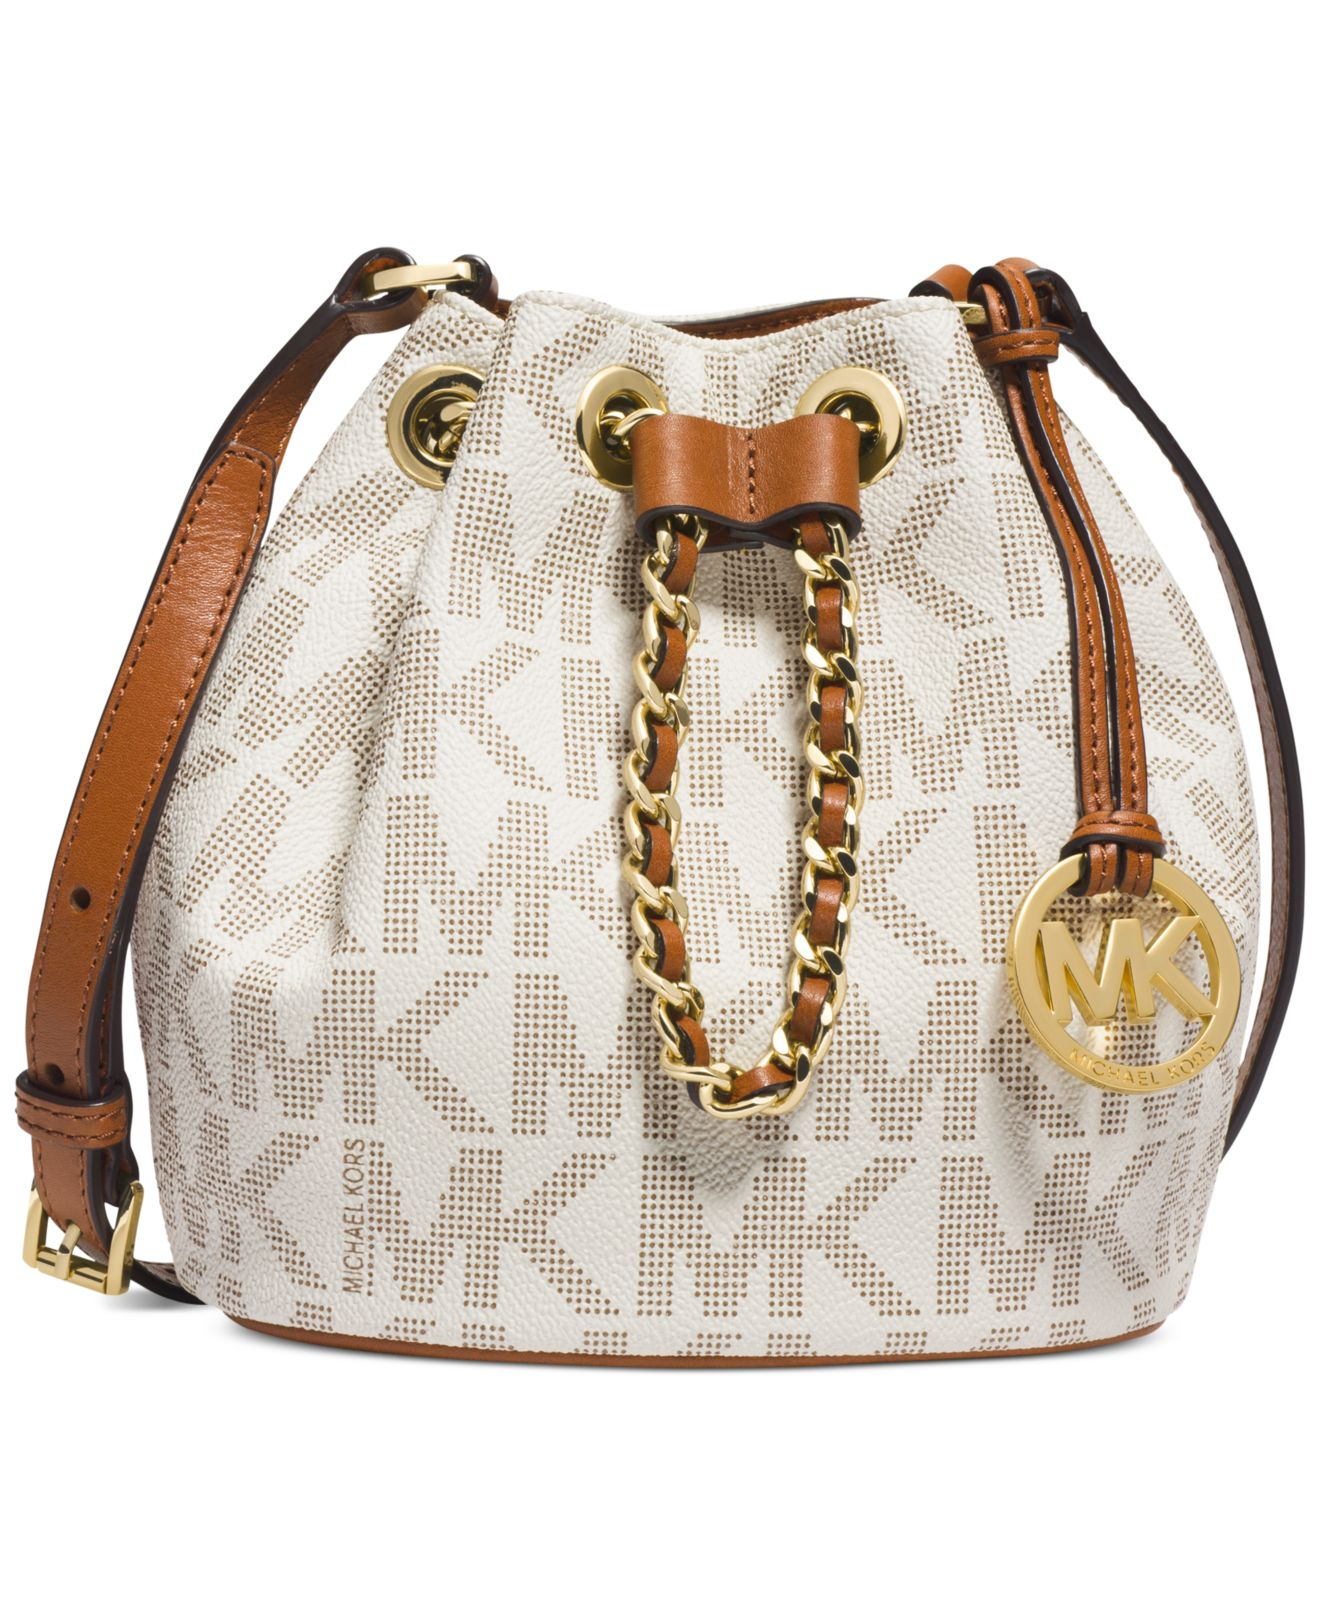 637e2ffc32e5 ... leather medium backpack bright red f05fc 22003; where can i buy lyst michael  kors michael frankie drawstring crossbody in white b64e0 3e83f